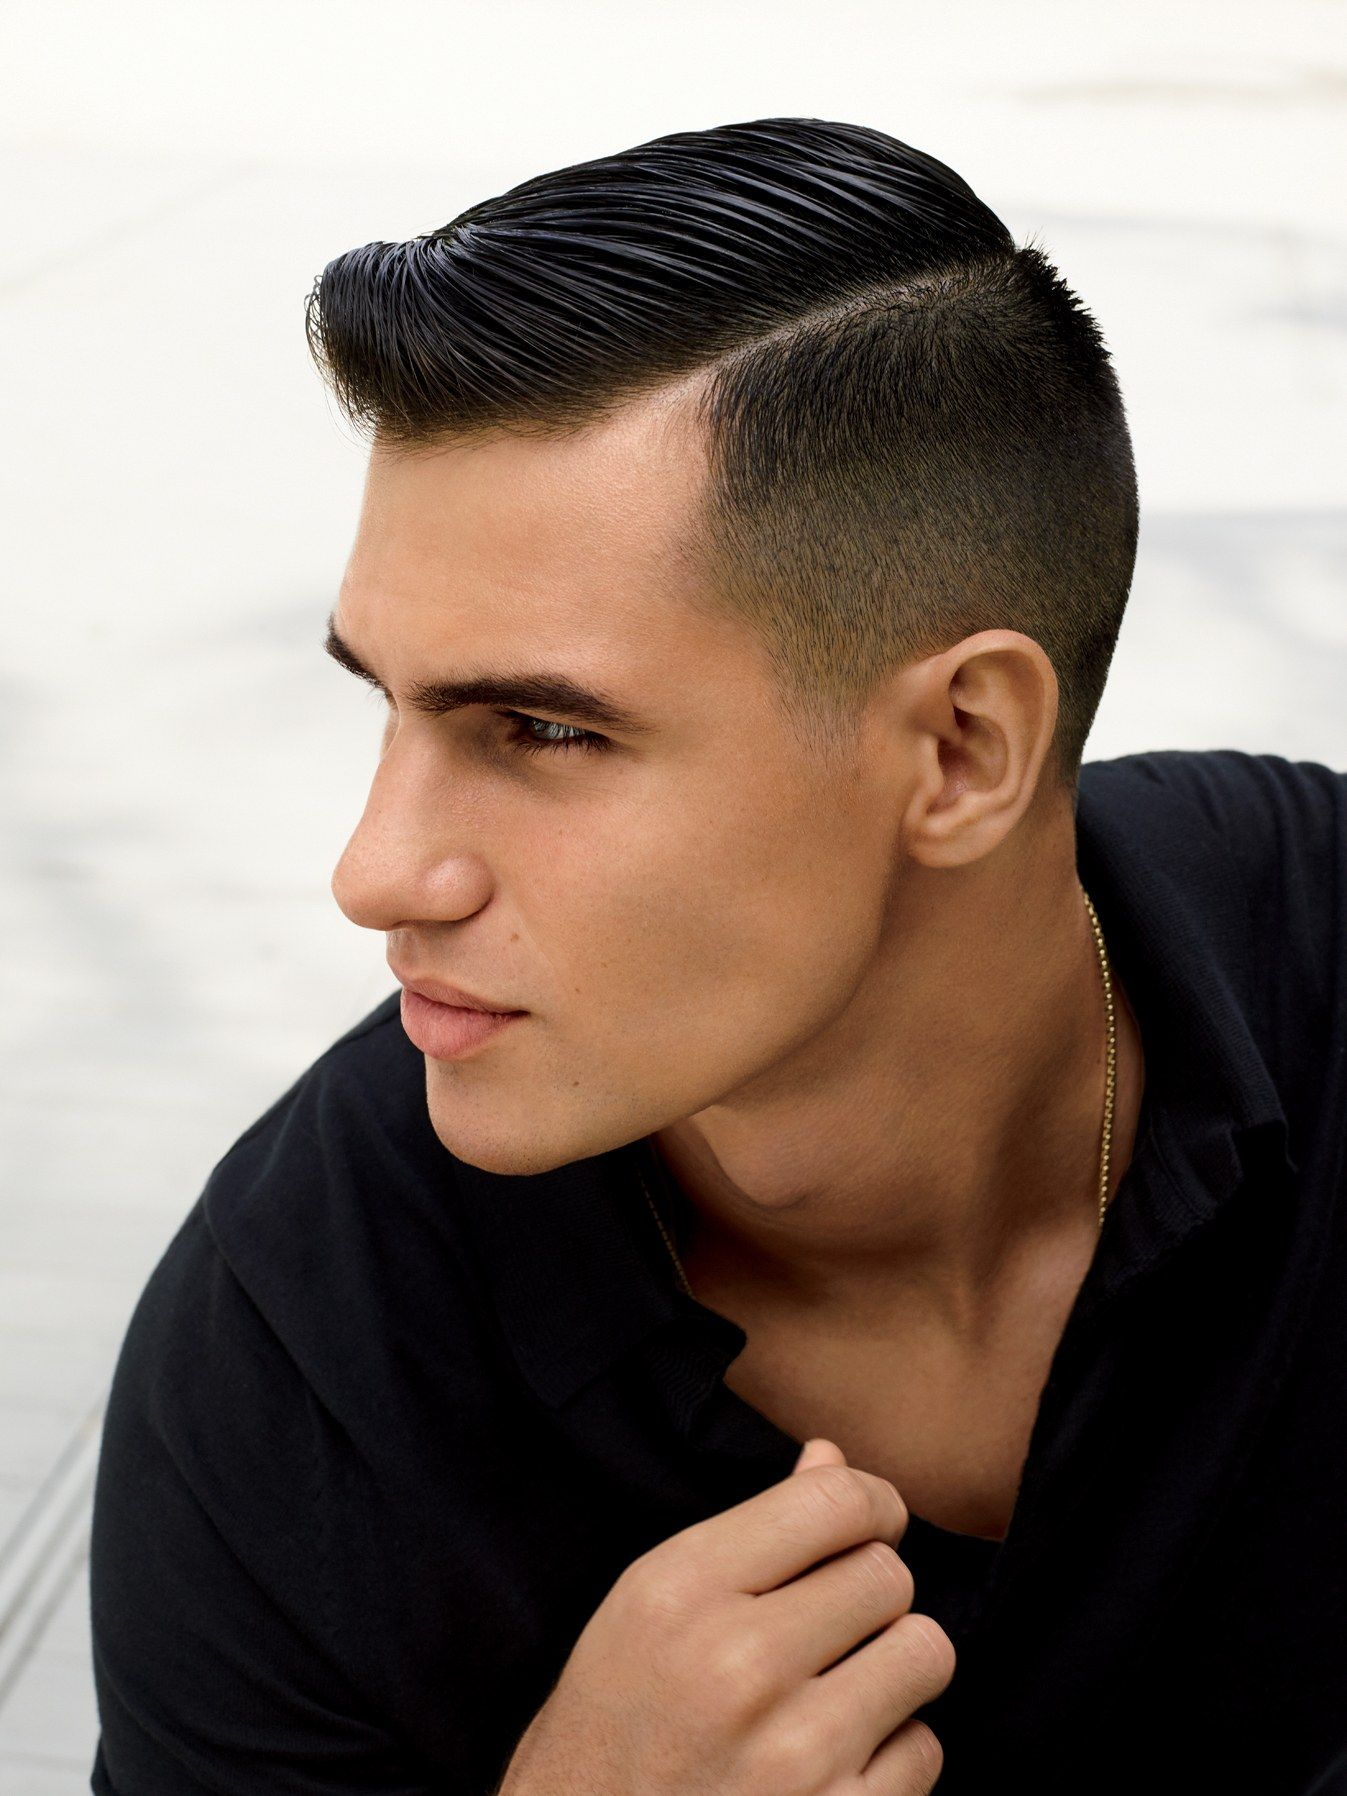 The Best Short Haircut For Men This Summer Haircut Pinterest